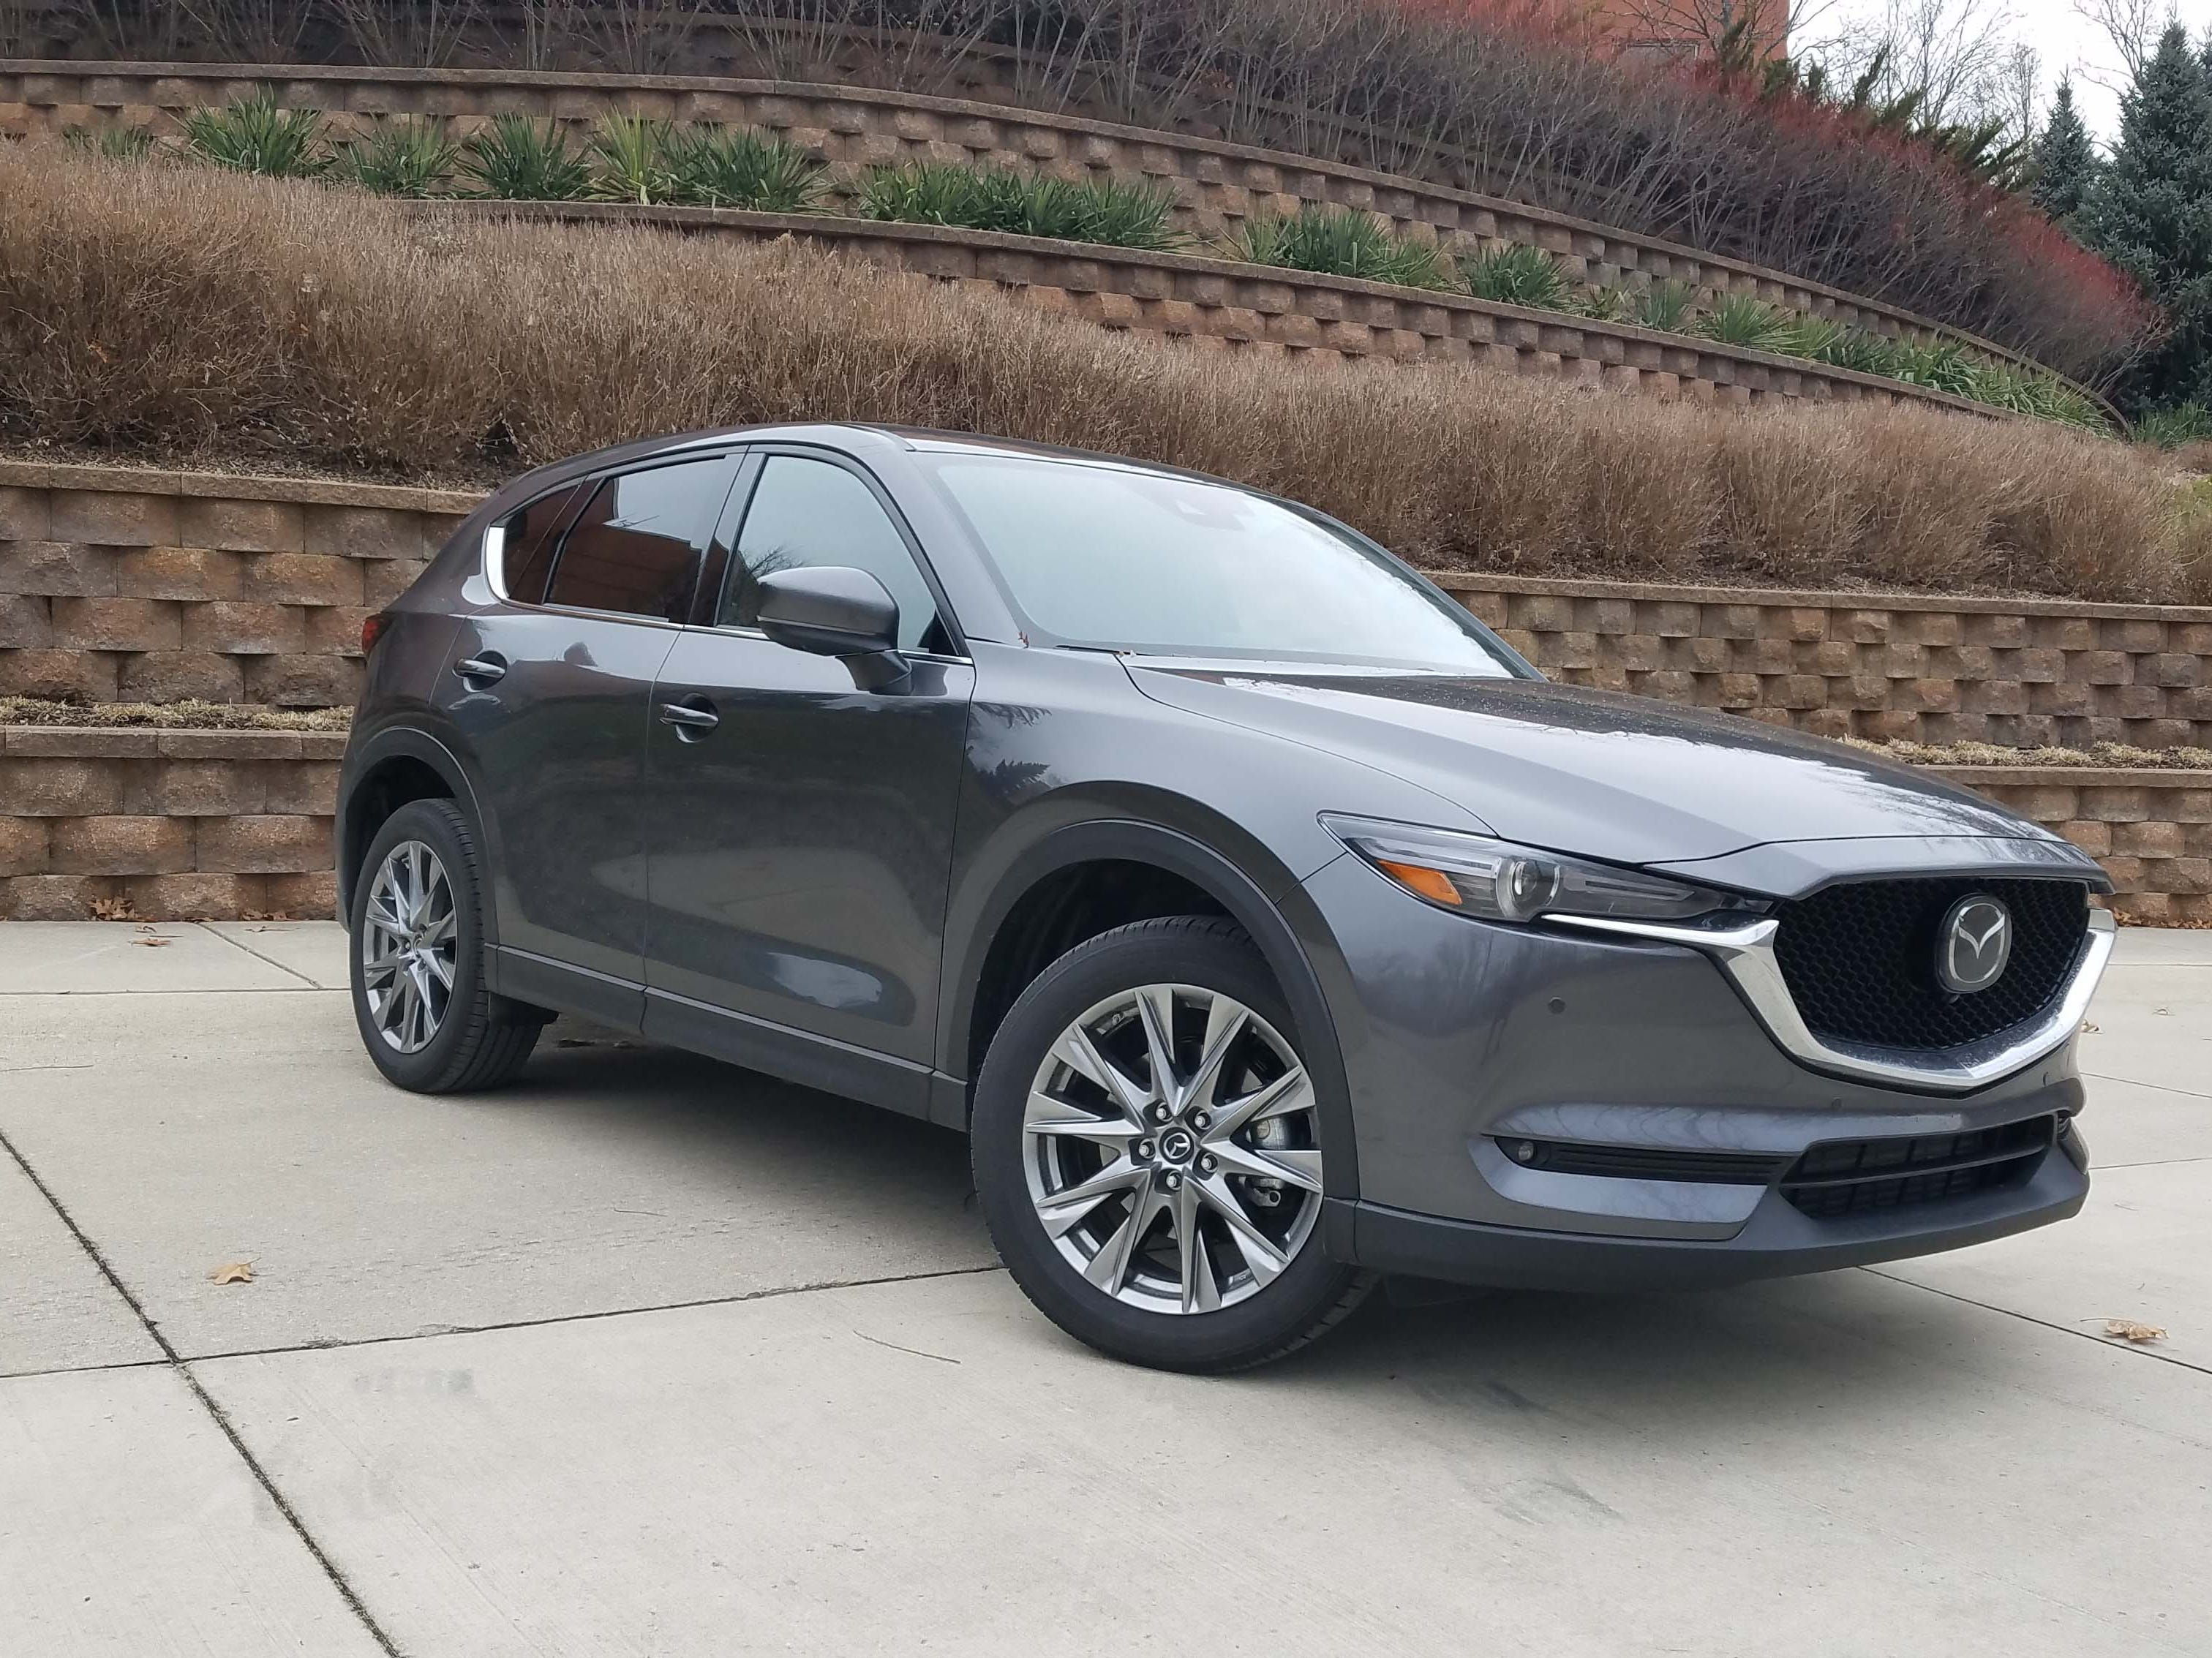 Pound-for-dollar the best. The Mazda CX-5 Signature is the best SUV available. At under $40K it offers luxury looks, power and features found in BMWs and Audis costing $20K more.